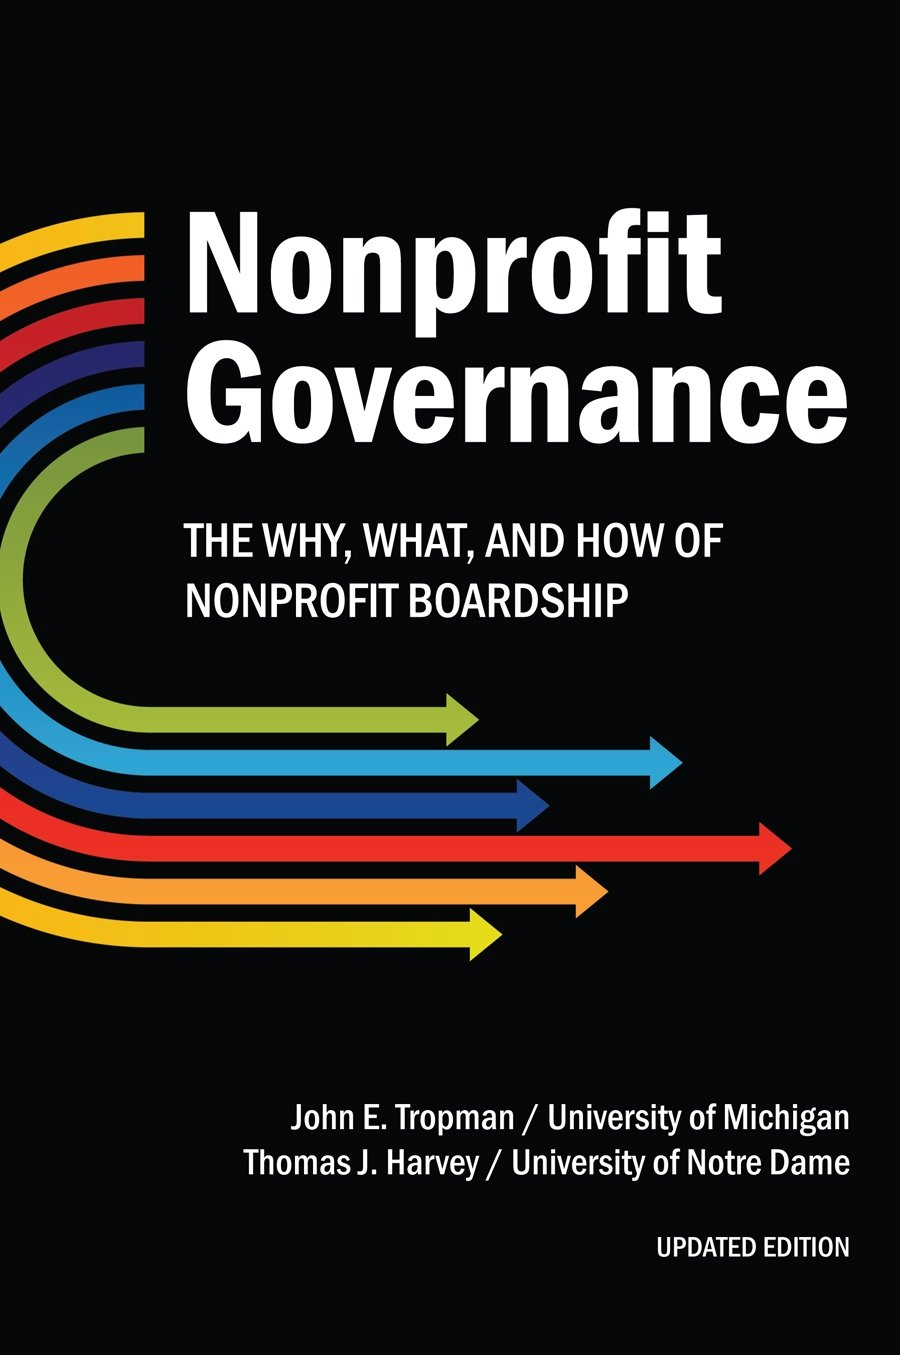 Download Nonprofit Governance: The Why, What, and How of Nonprofit Governance ebook